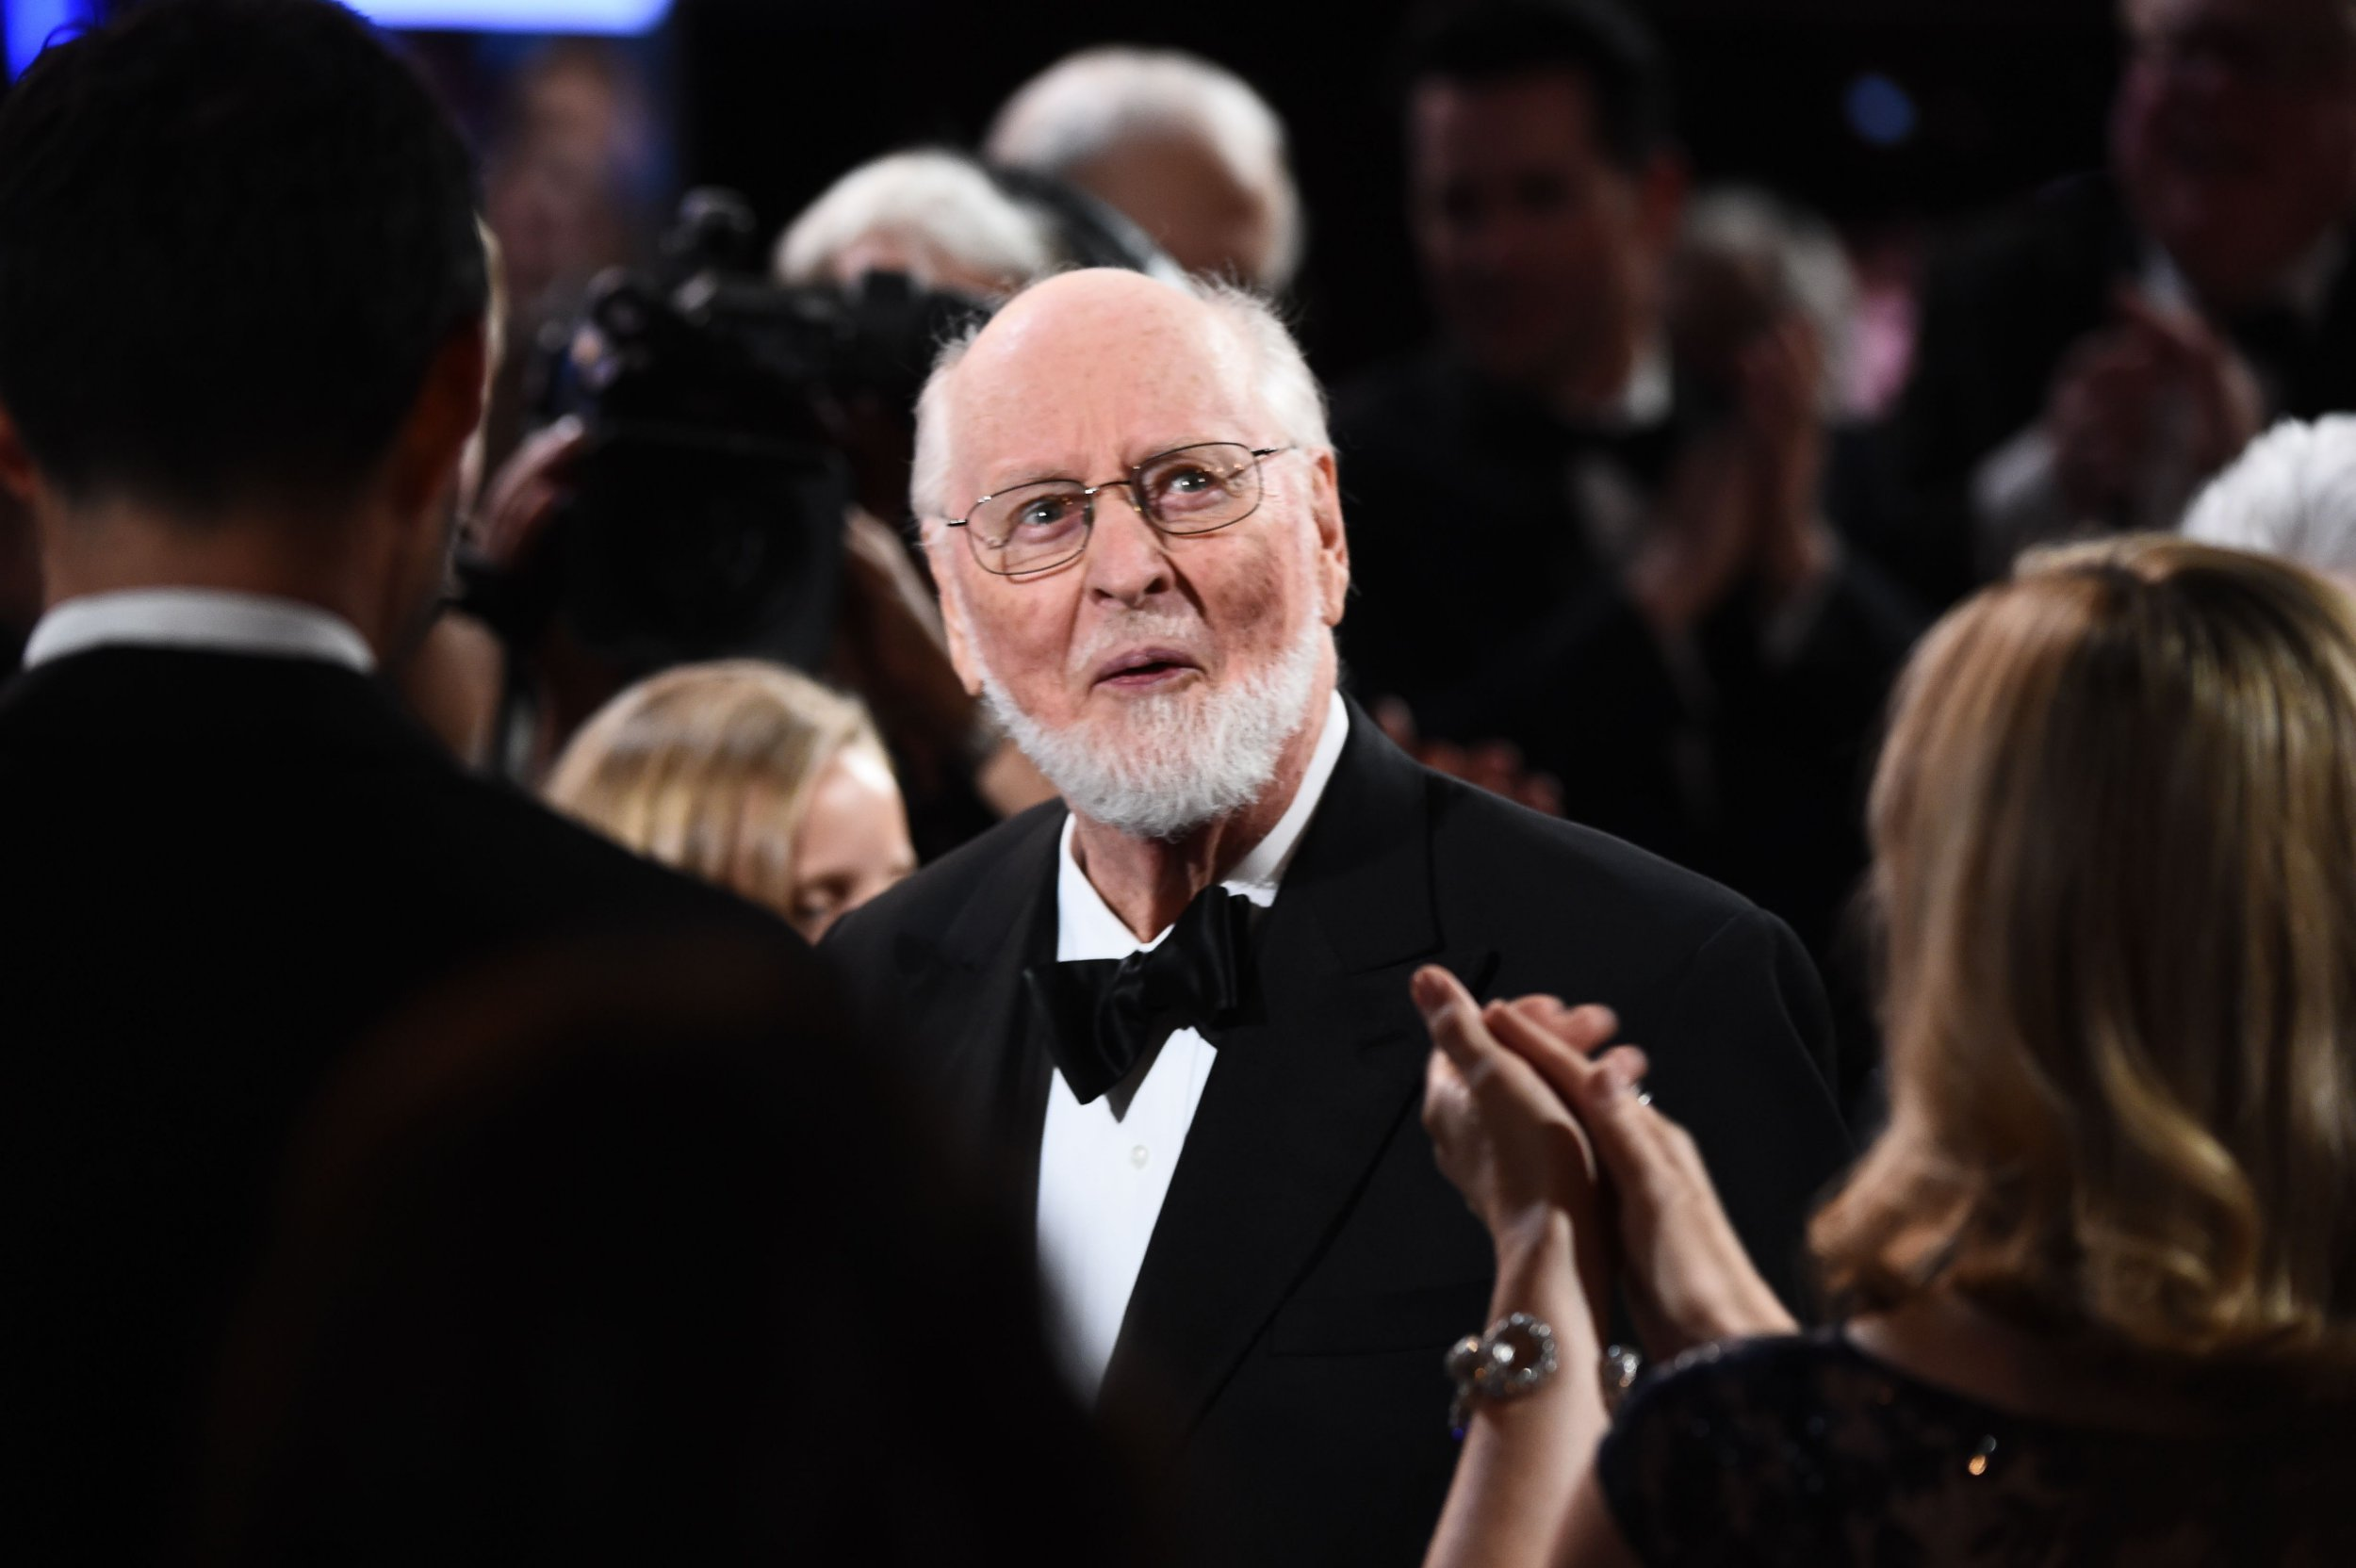 John Williams movies, awards and age as he cancels Royal Albert Hall appearance